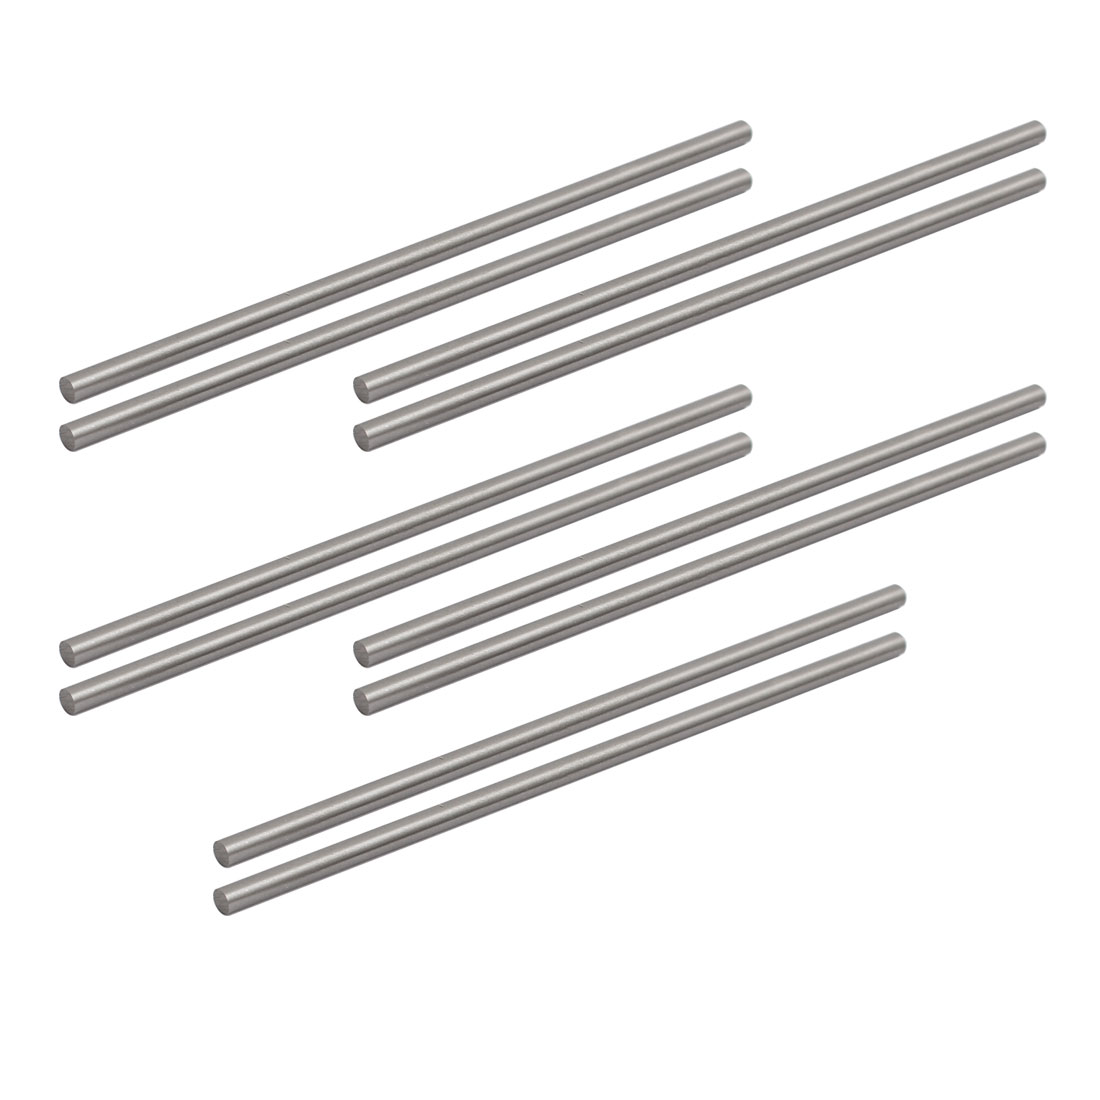 Unique Bargains 3mm Diameter 100mm Long HSS Round Turning Lathe Carbide Bars 10pcs